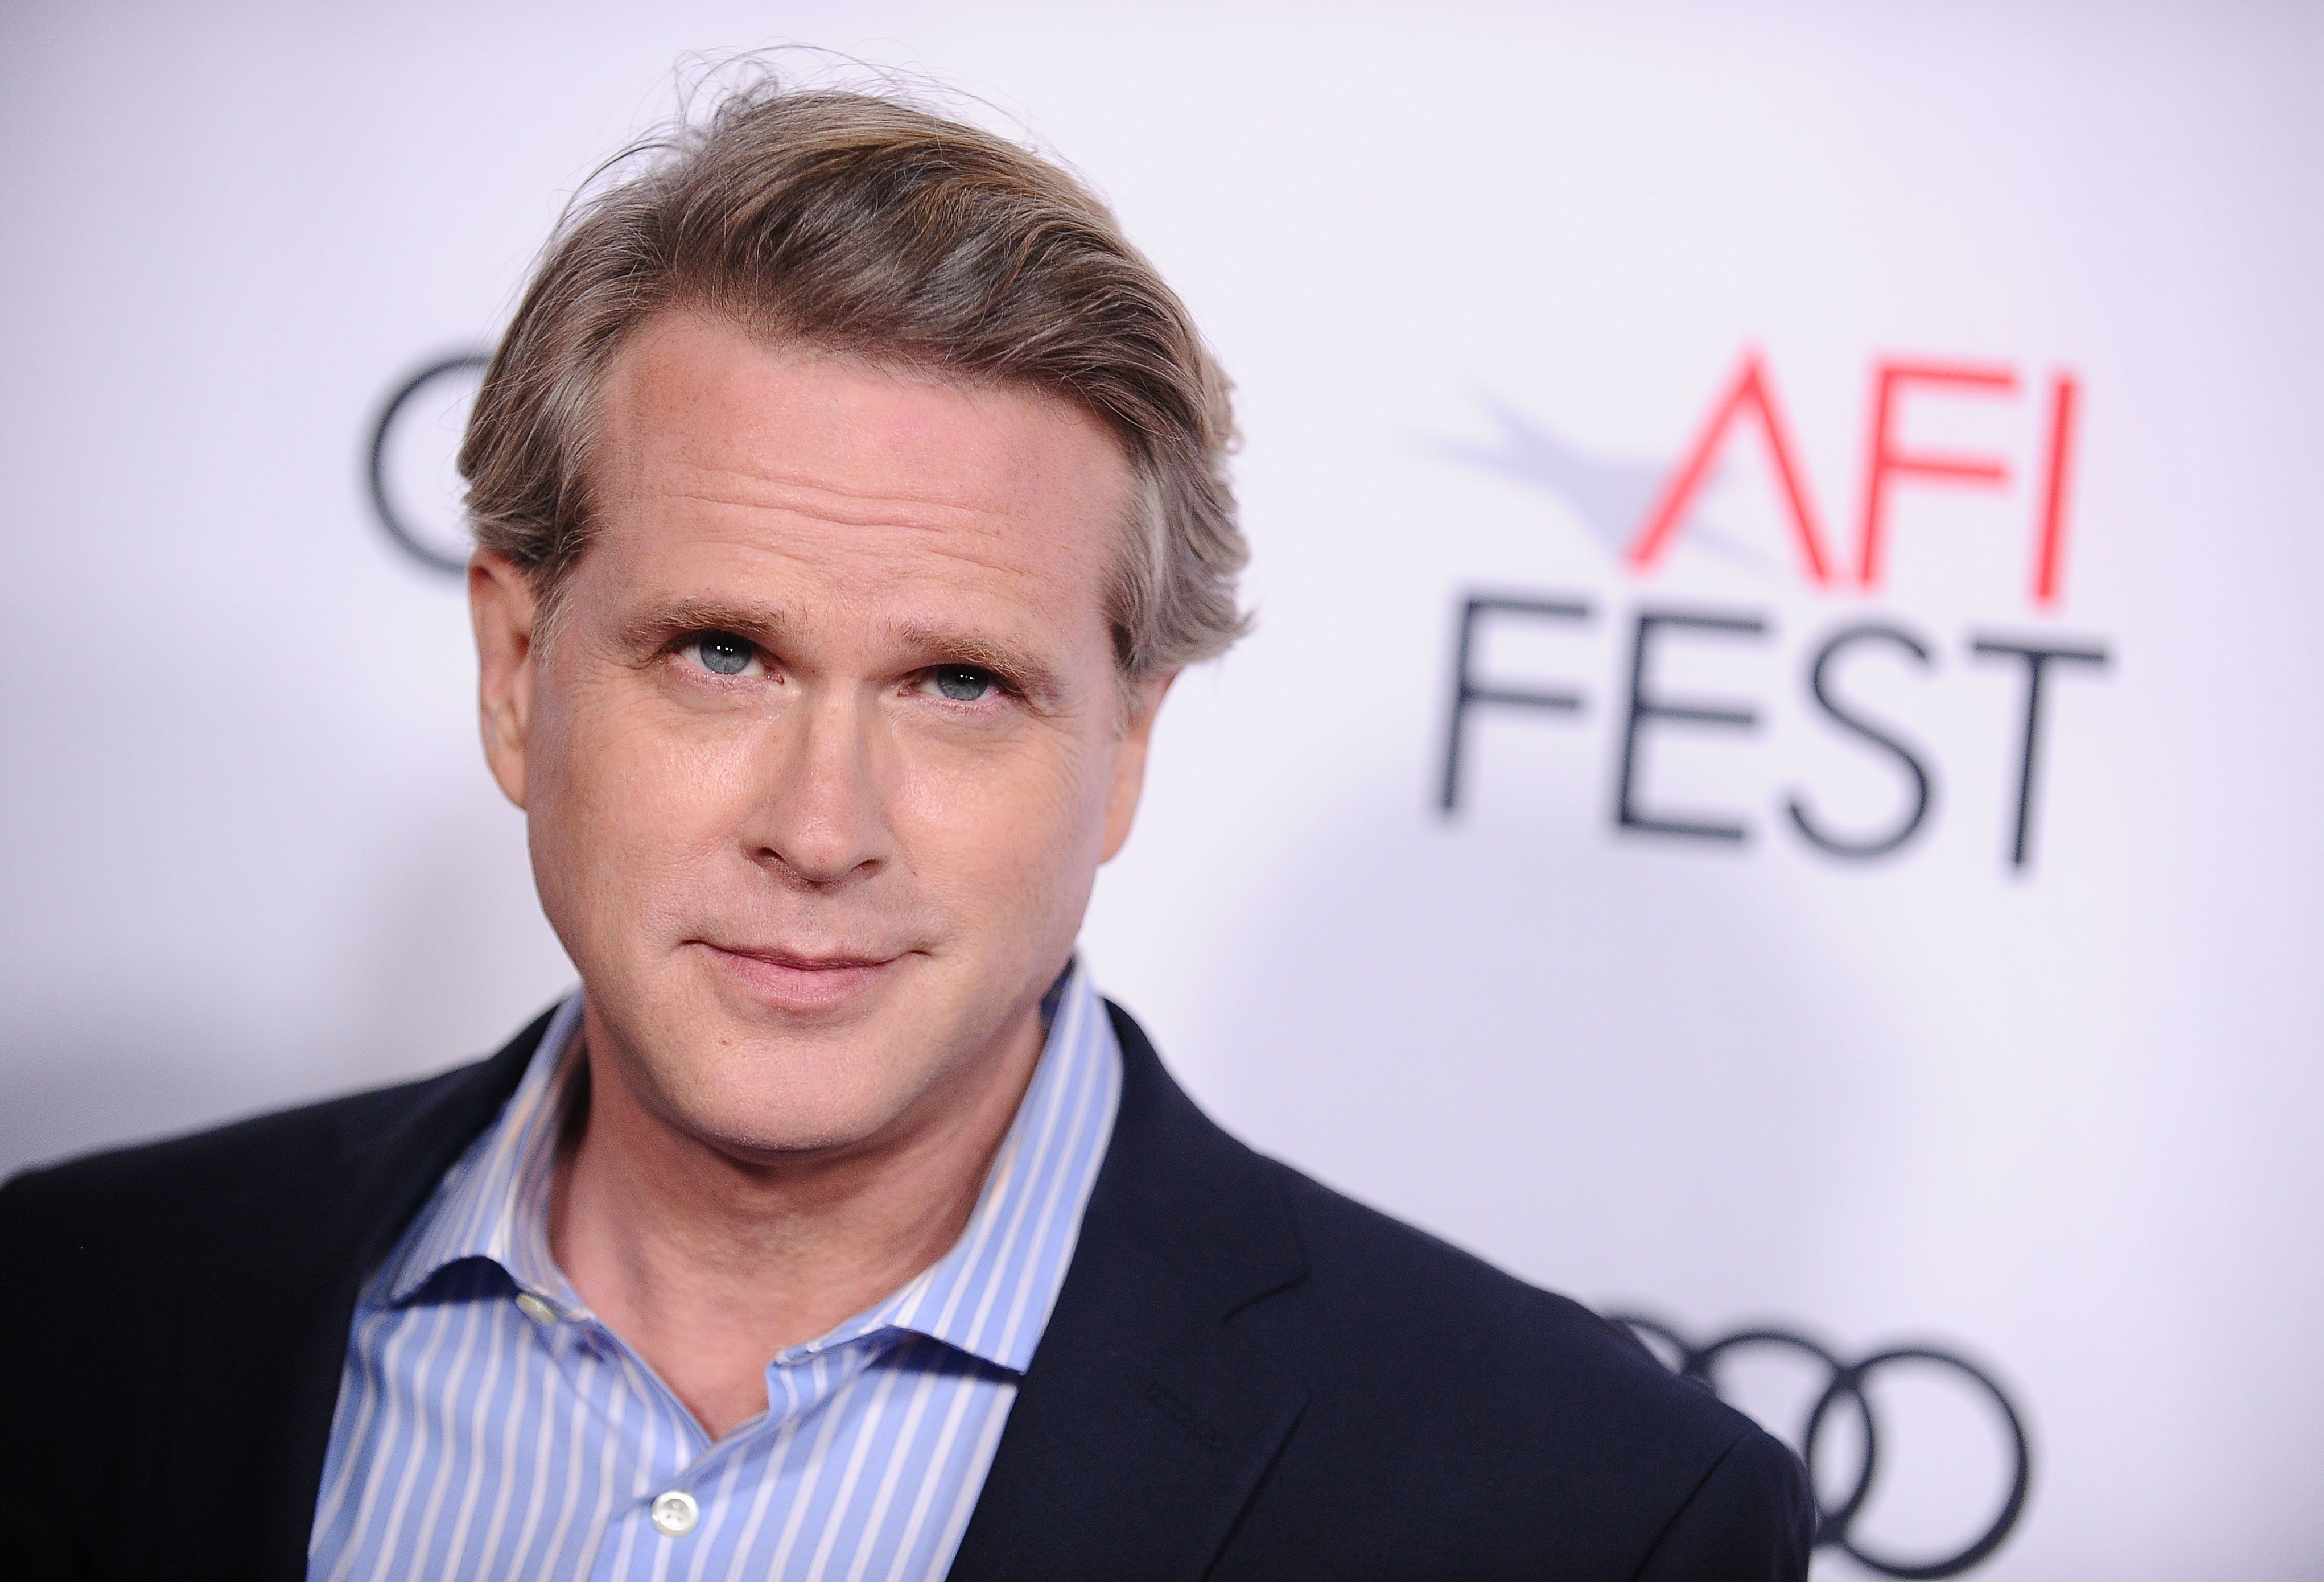 HOLLYWOOD, CA - NOVEMBER 09:  Actor Cary Elwes attends the 2017 AFI Fest opening night gala screening of 'Mudbound' at TCL Chinese Theatre on November 9, 2017 in Hollywood, California.  (Photo by Jason LaVeris/FilmMagic)